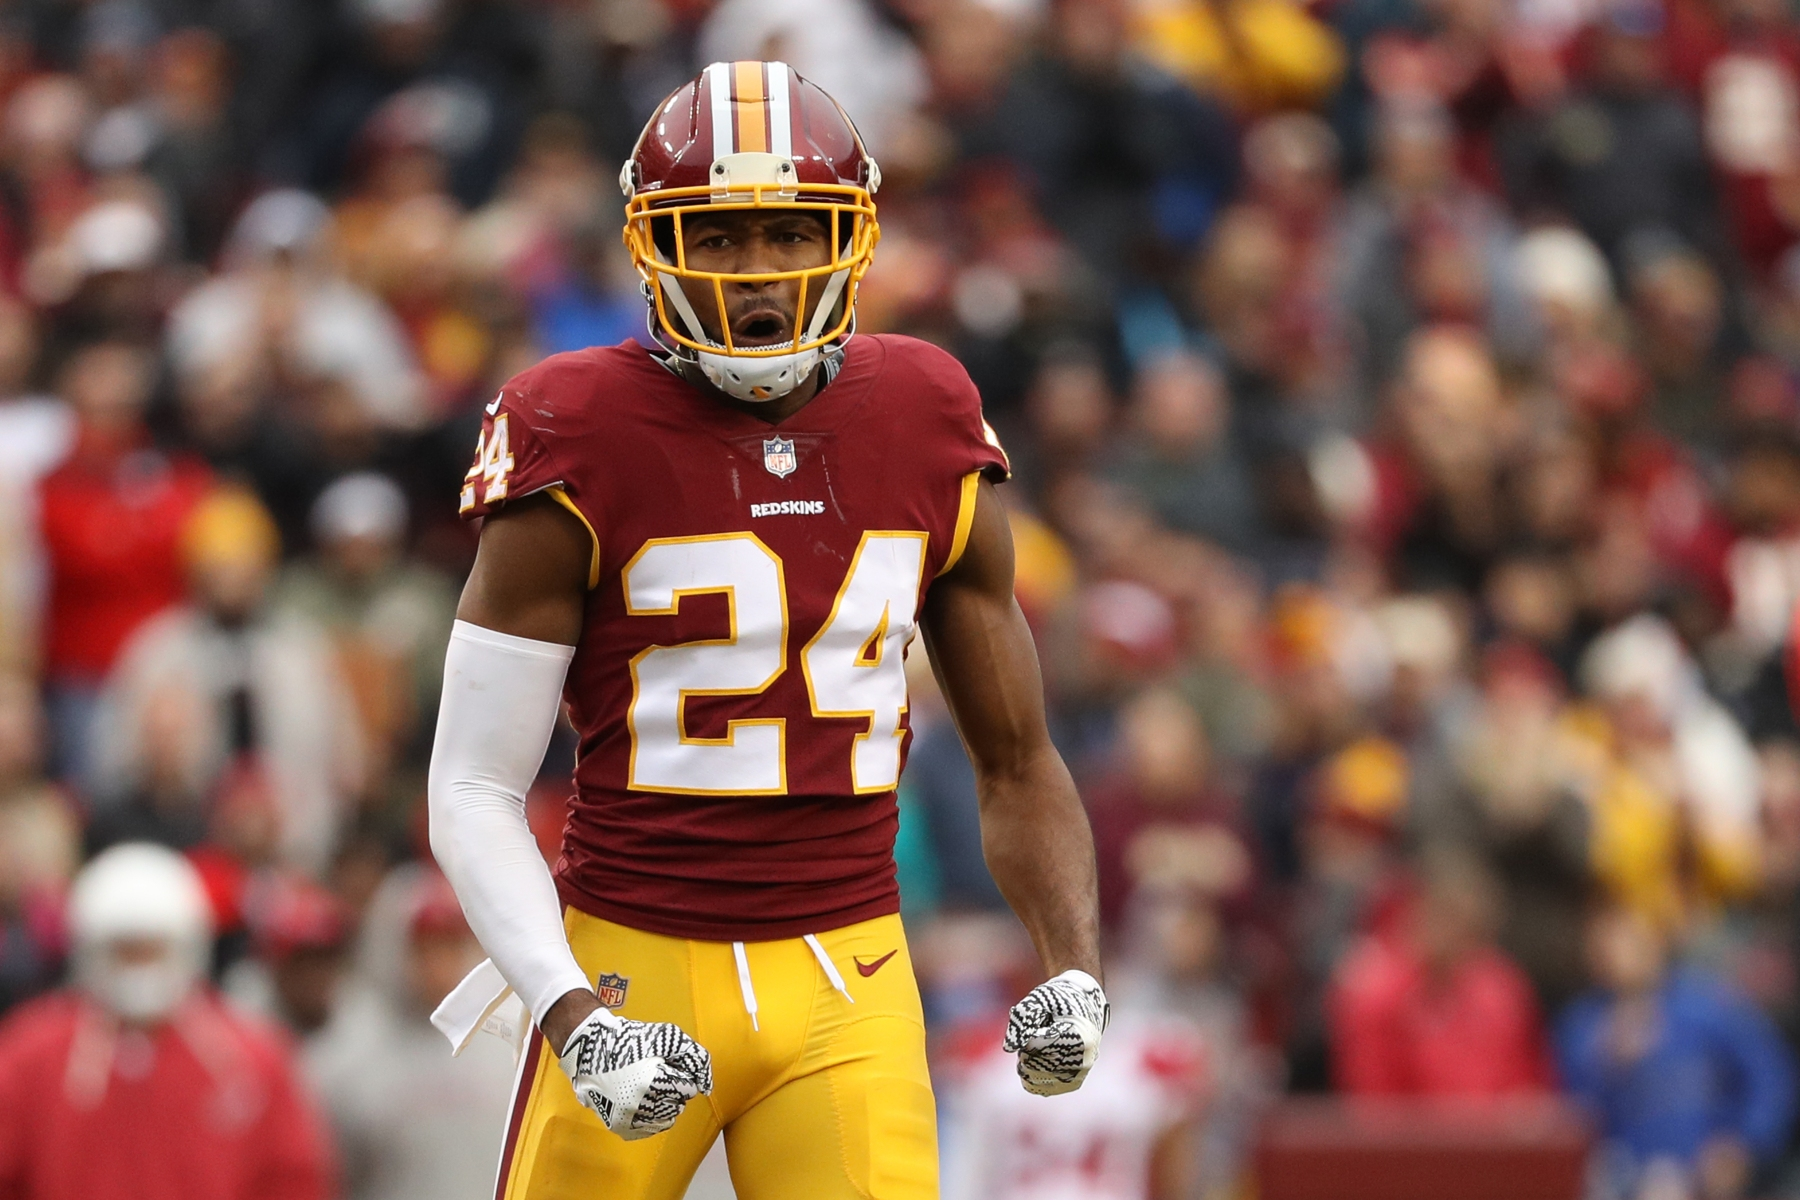 Cornerback Josh Norman #24 of the Washington Redskins reacts after a play in the fourth quarter against the Arizona Cardinals. (Photo by Patrick Smith/Getty Images)